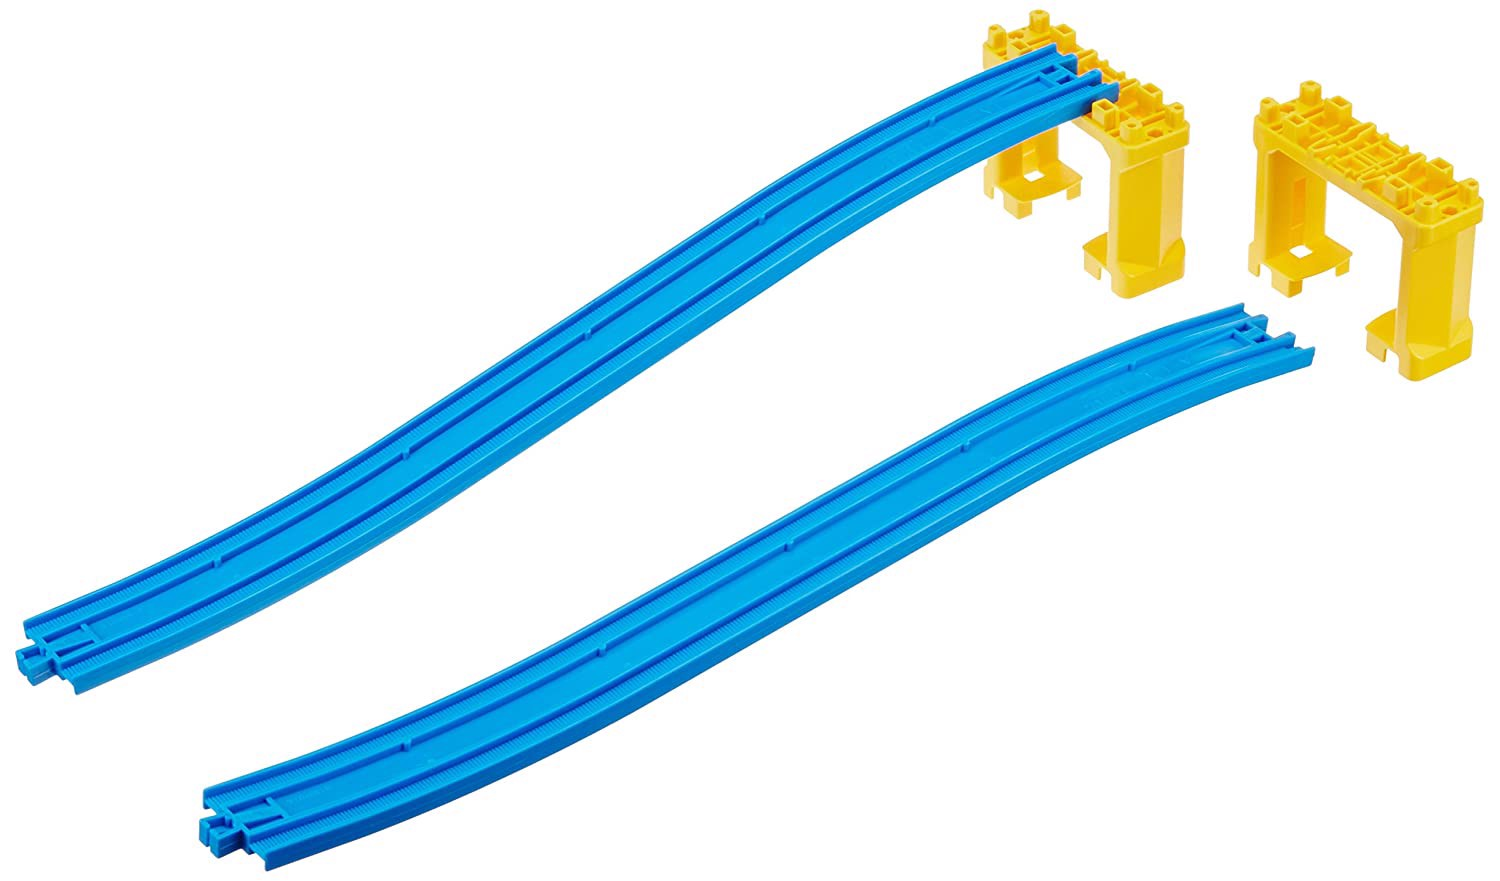 R-06 Sloping Rail